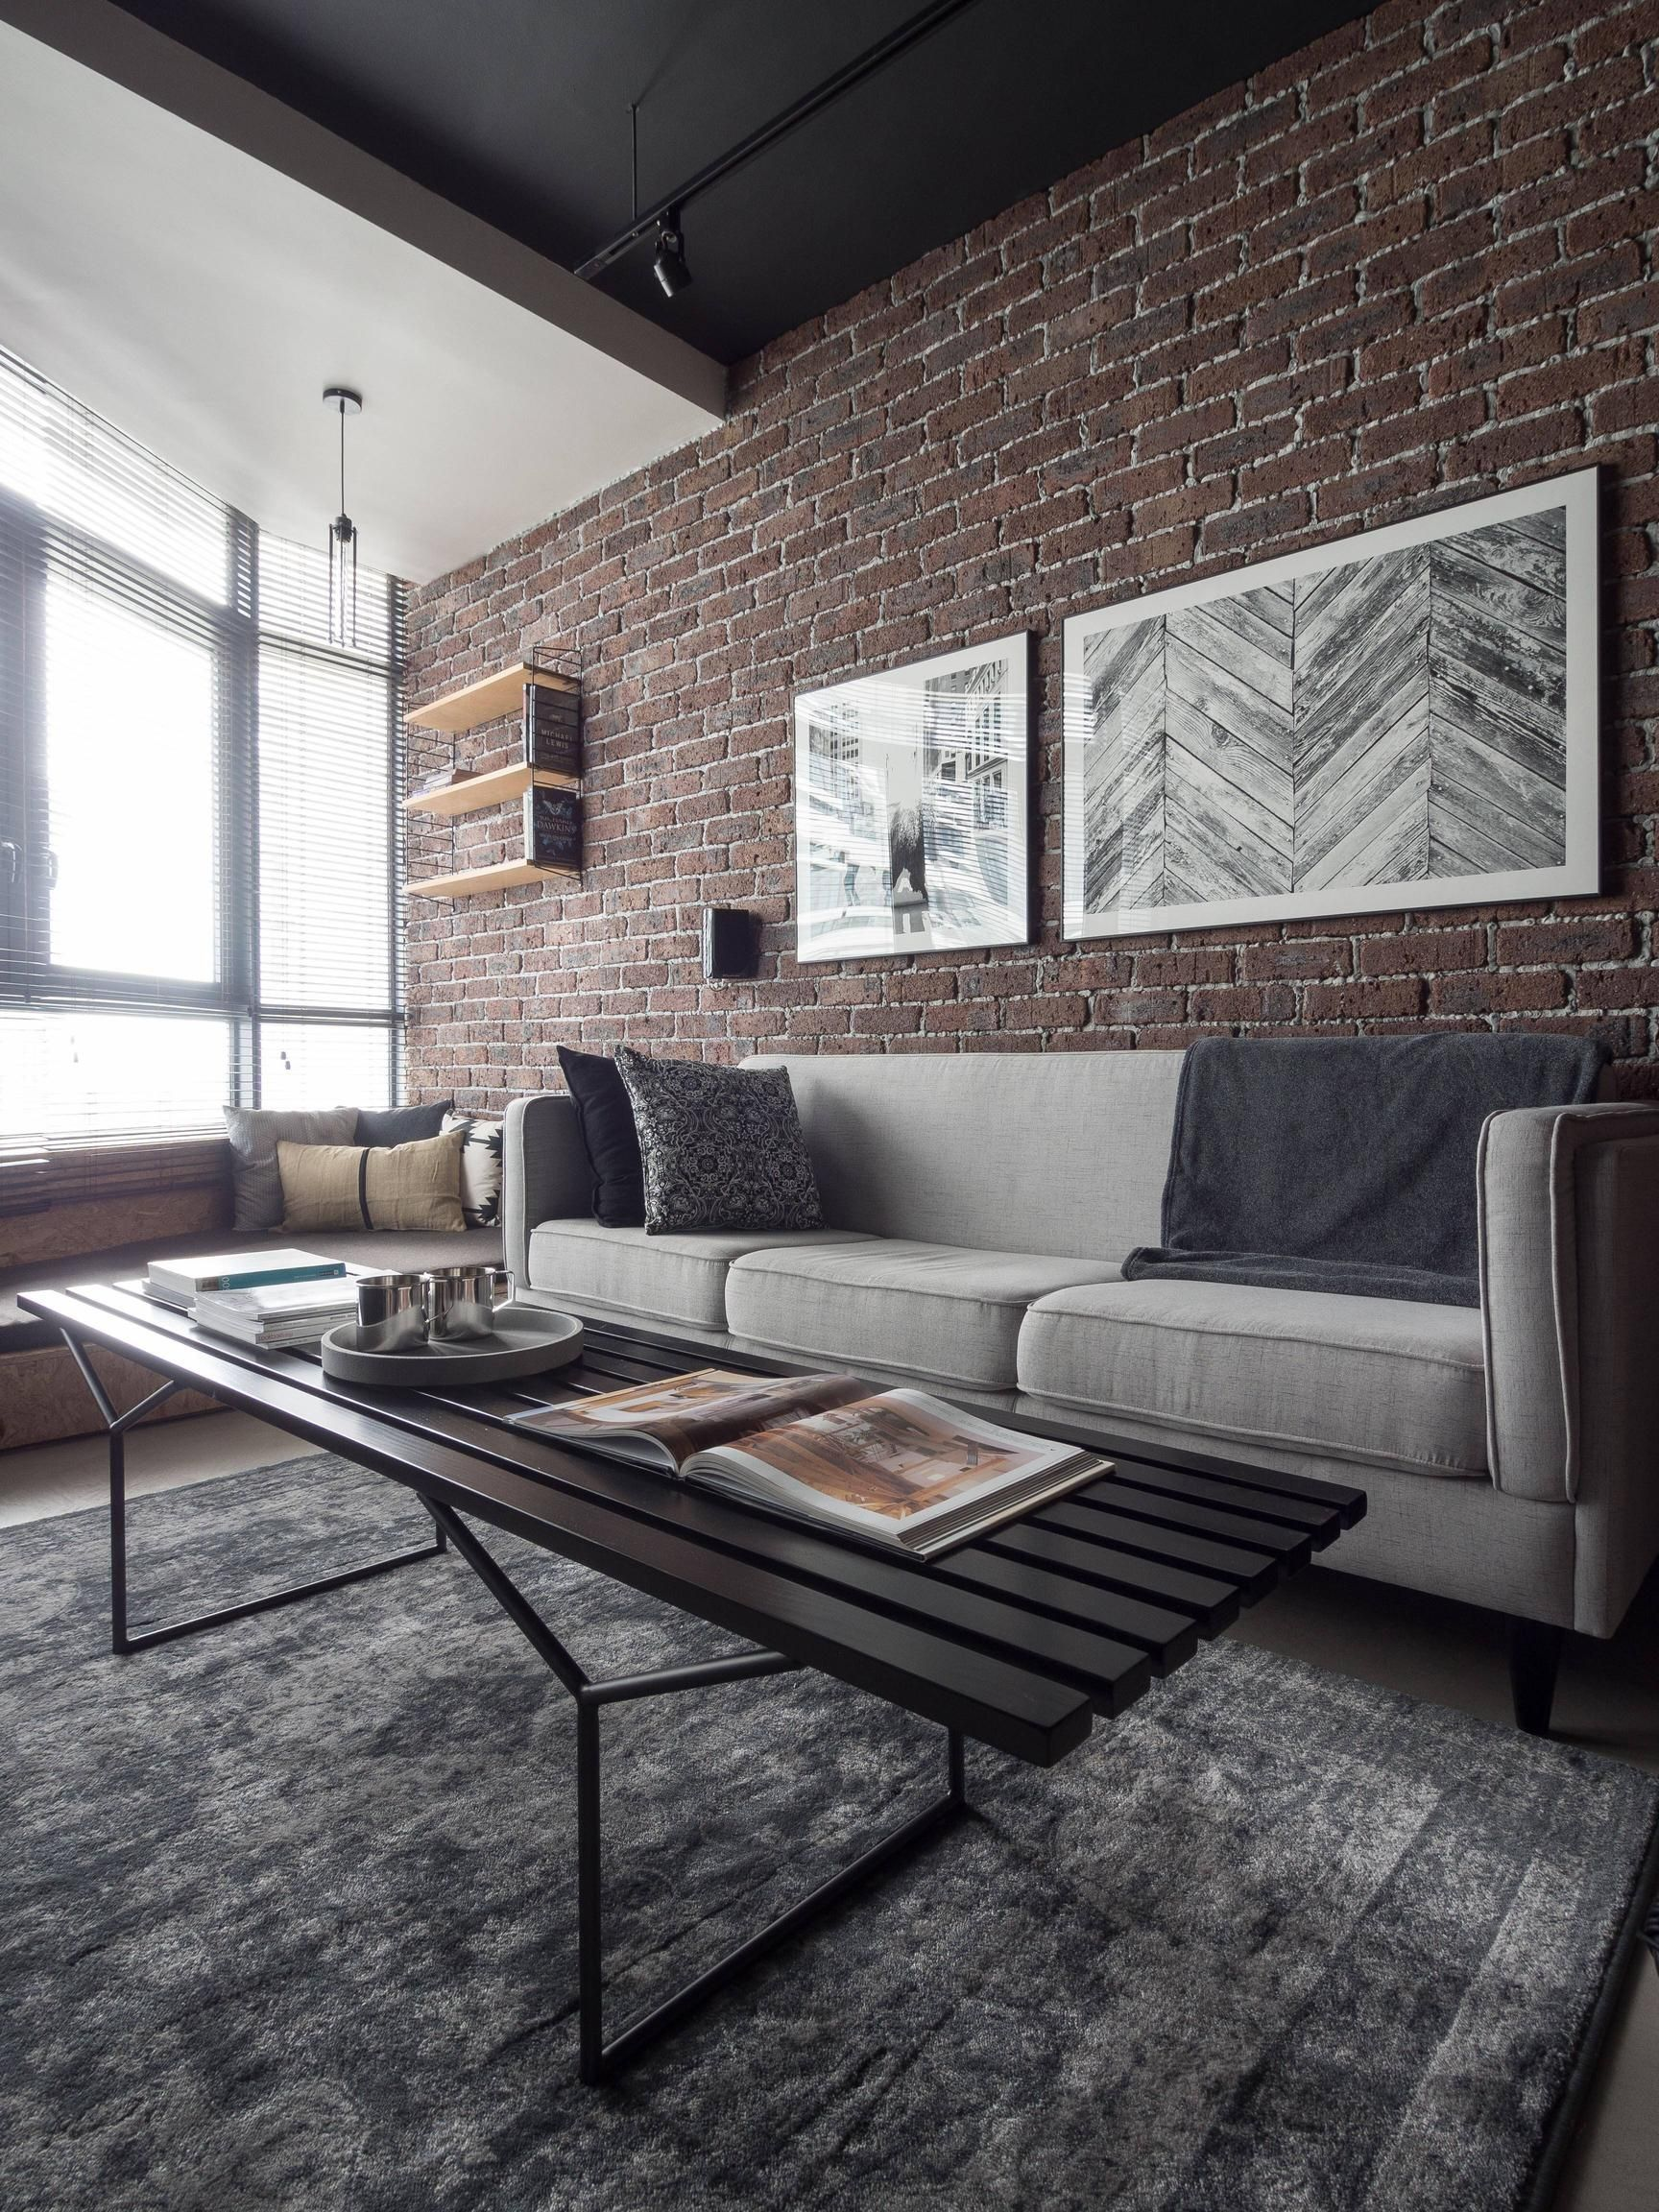 My First Home A Take On A Contemporary Industrial Theme In